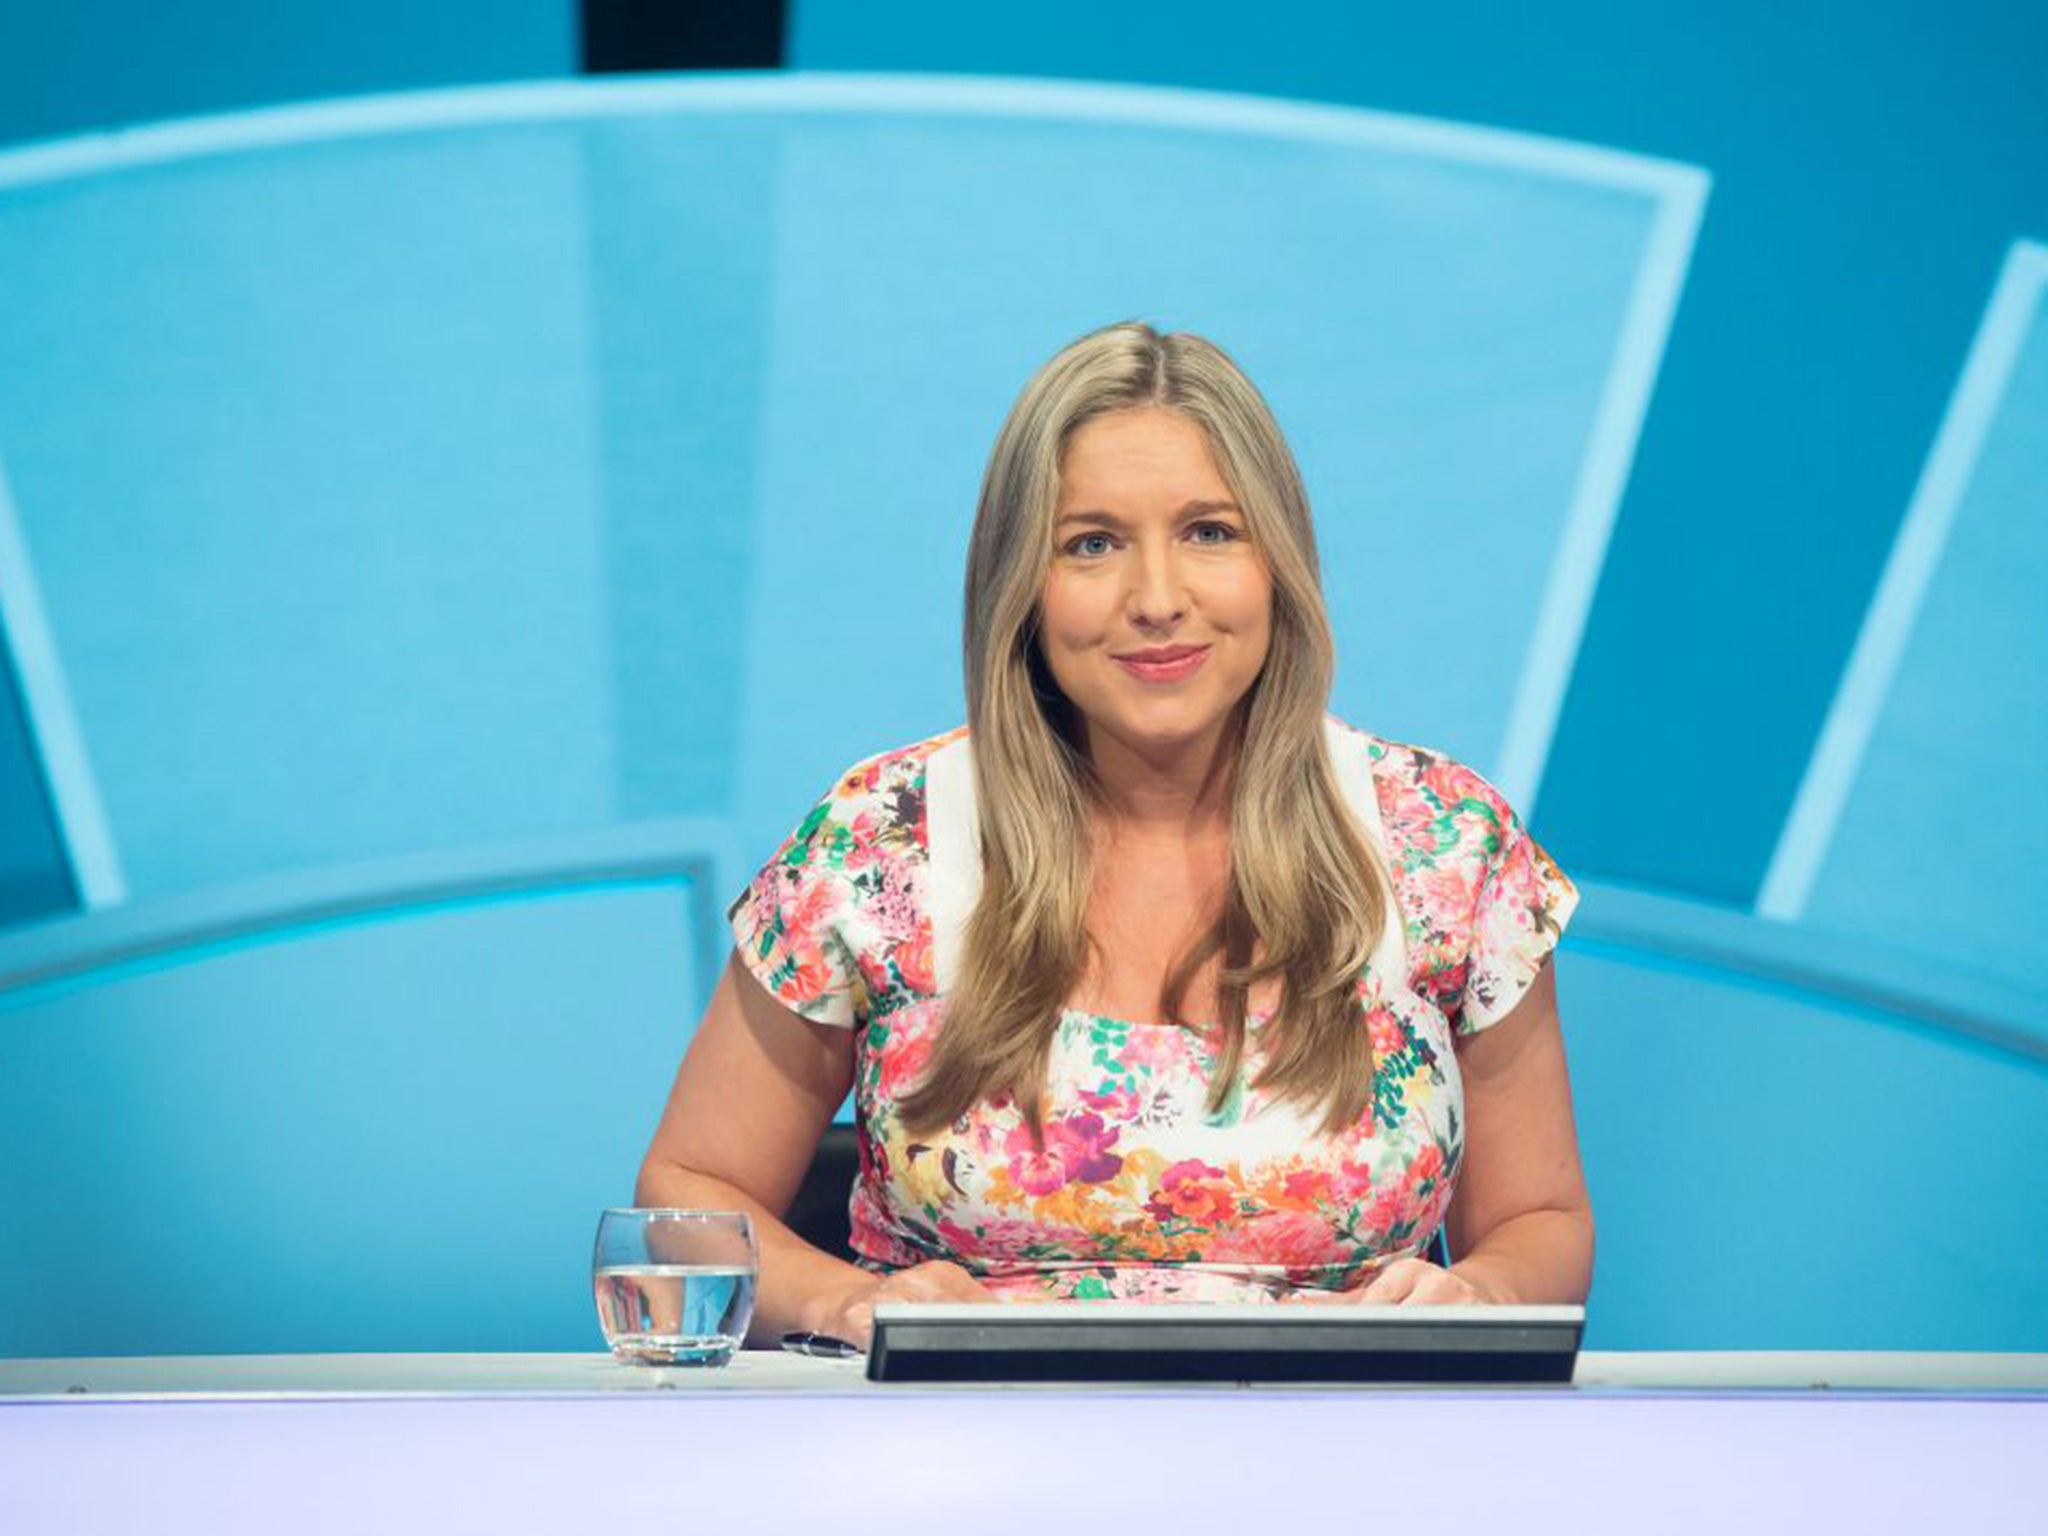 Only Connect Victoria Coren Mitchell S Fiendishly Difficult Cult Quiz Overtakes Bbc1 In Ratings The Independent The Independent